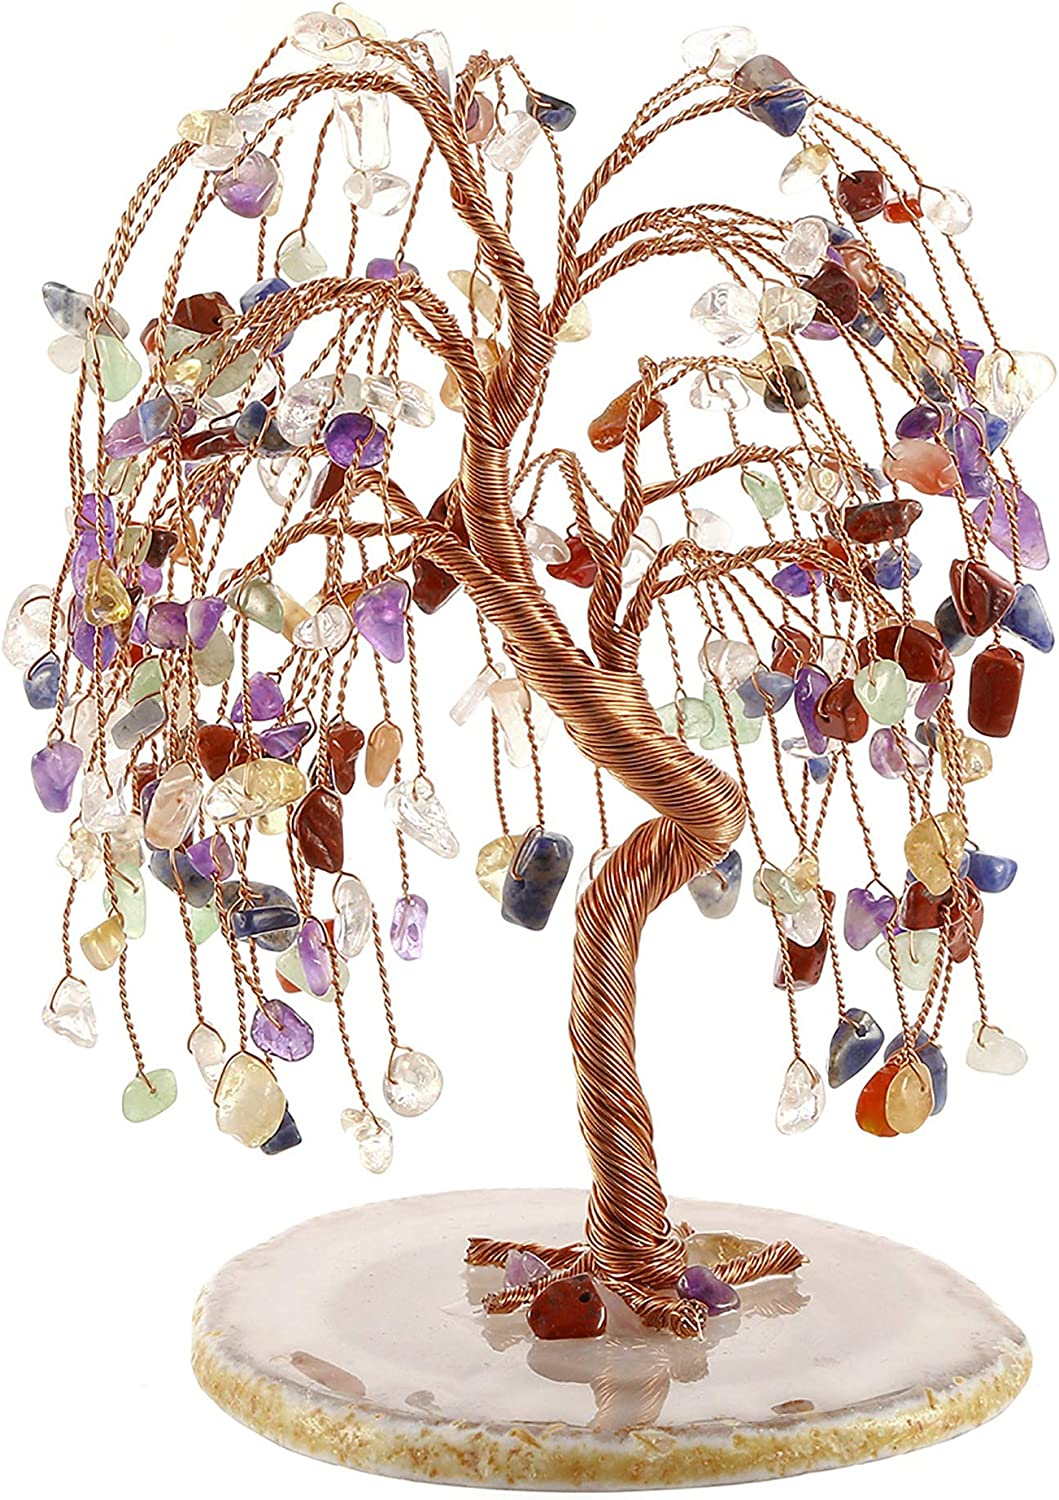 Jovivi Natural 7 Chakra Healing Crystals Quartz Tree Tumbled Gemstone Stones Money Tree, Geode Agate Slices Base Feng Shui Ornaments Home Decoration for Wealth and Luck 5.5